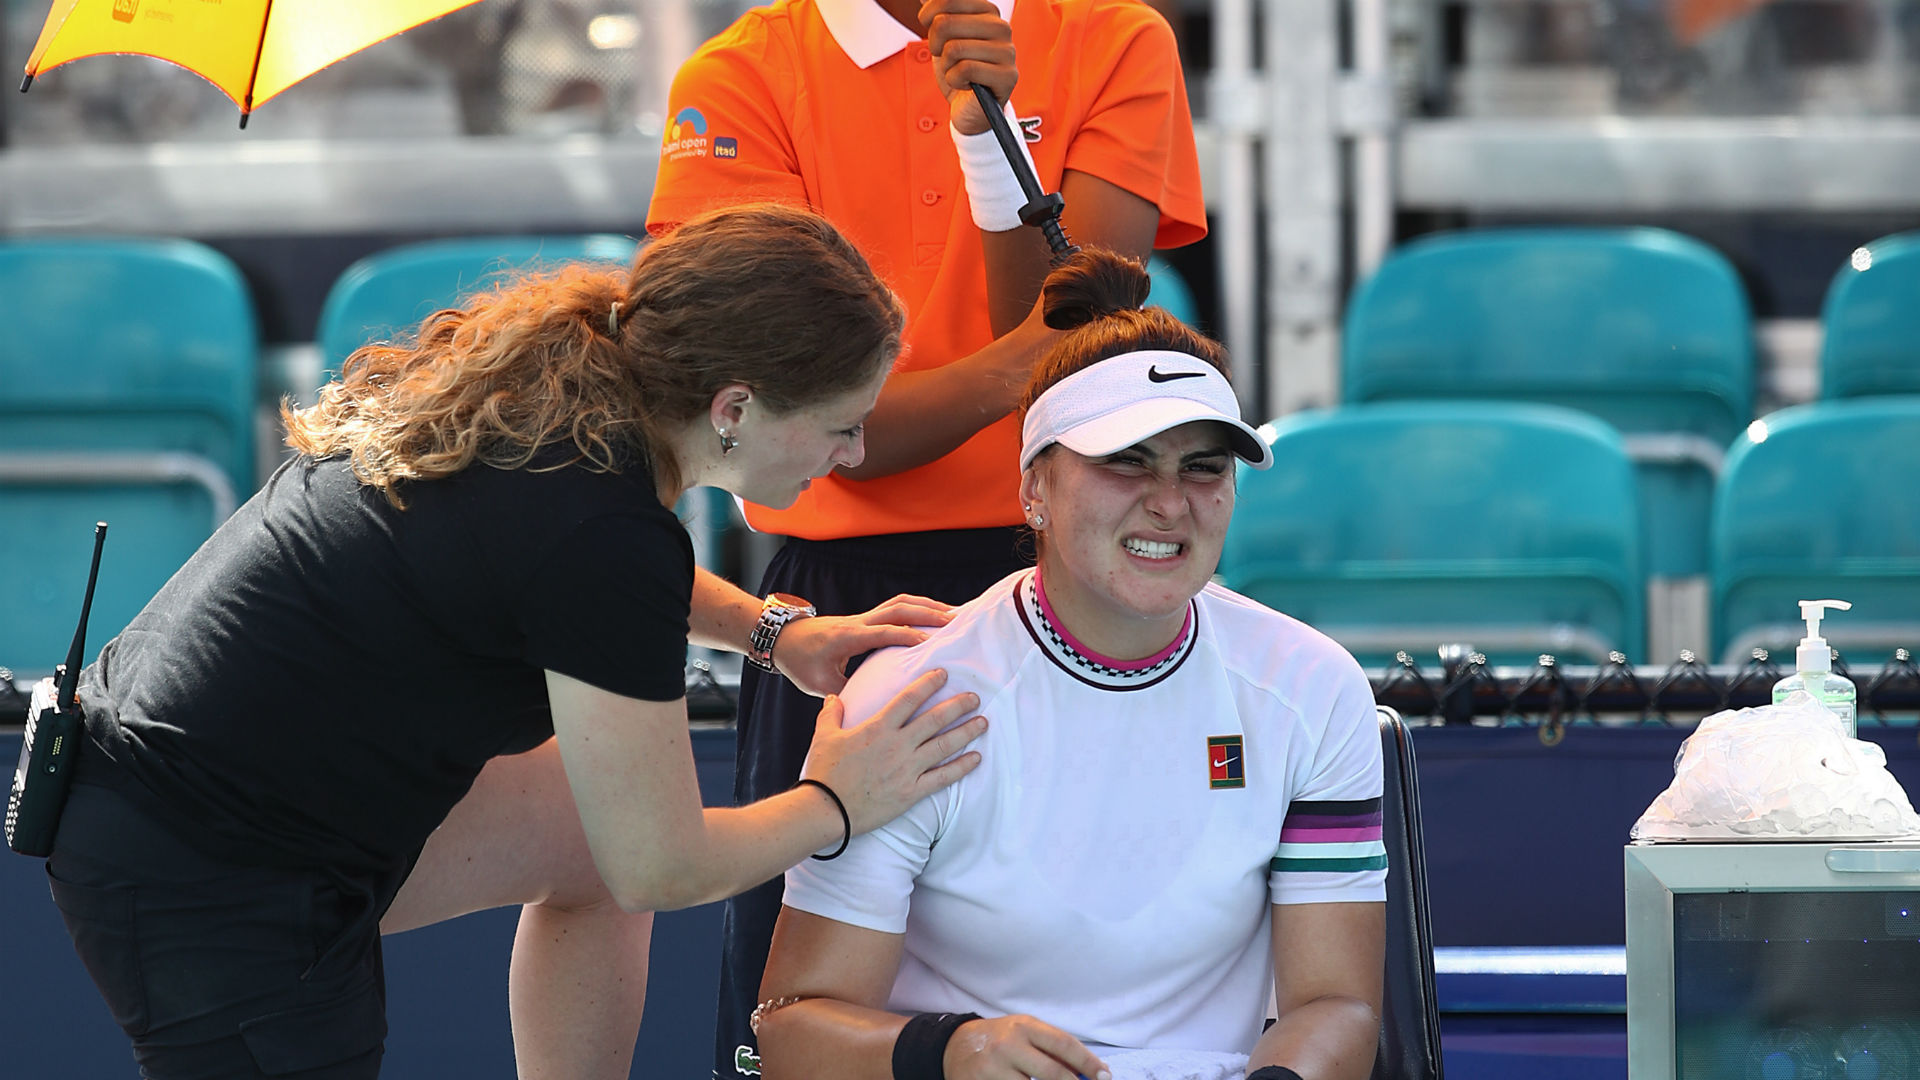 No Fed Cup return for injured Bianca Andreescu